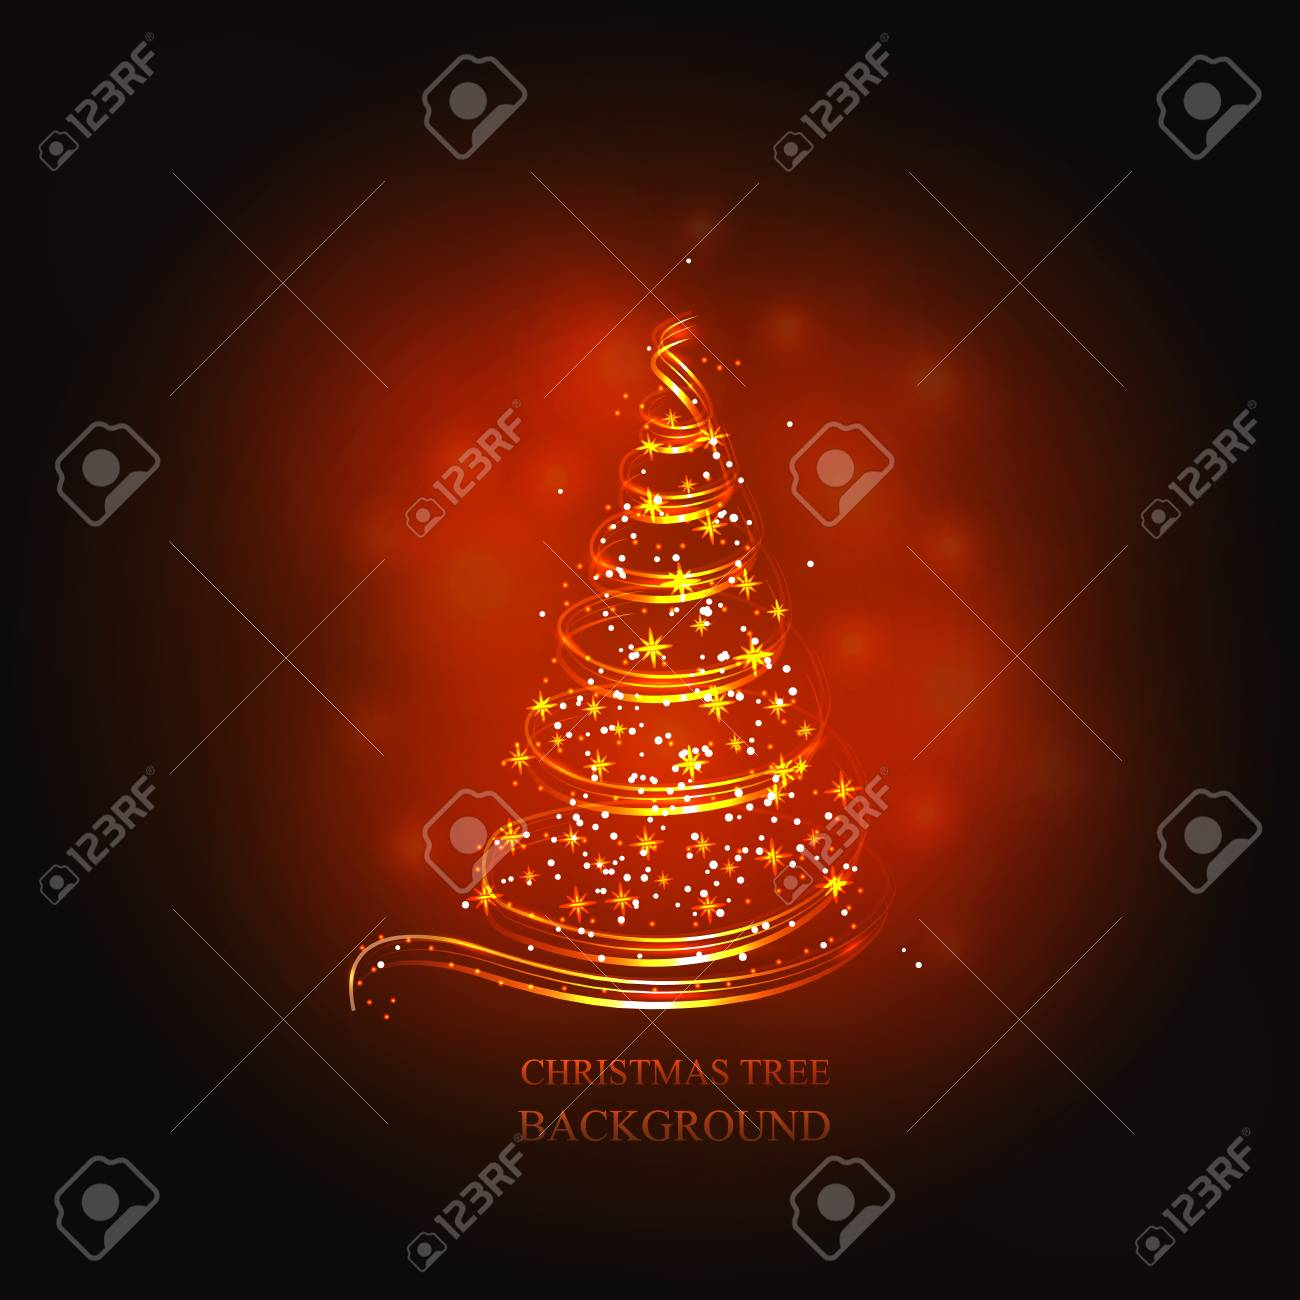 Abstract Background With Gold Christmas Tree And Stars Illustration